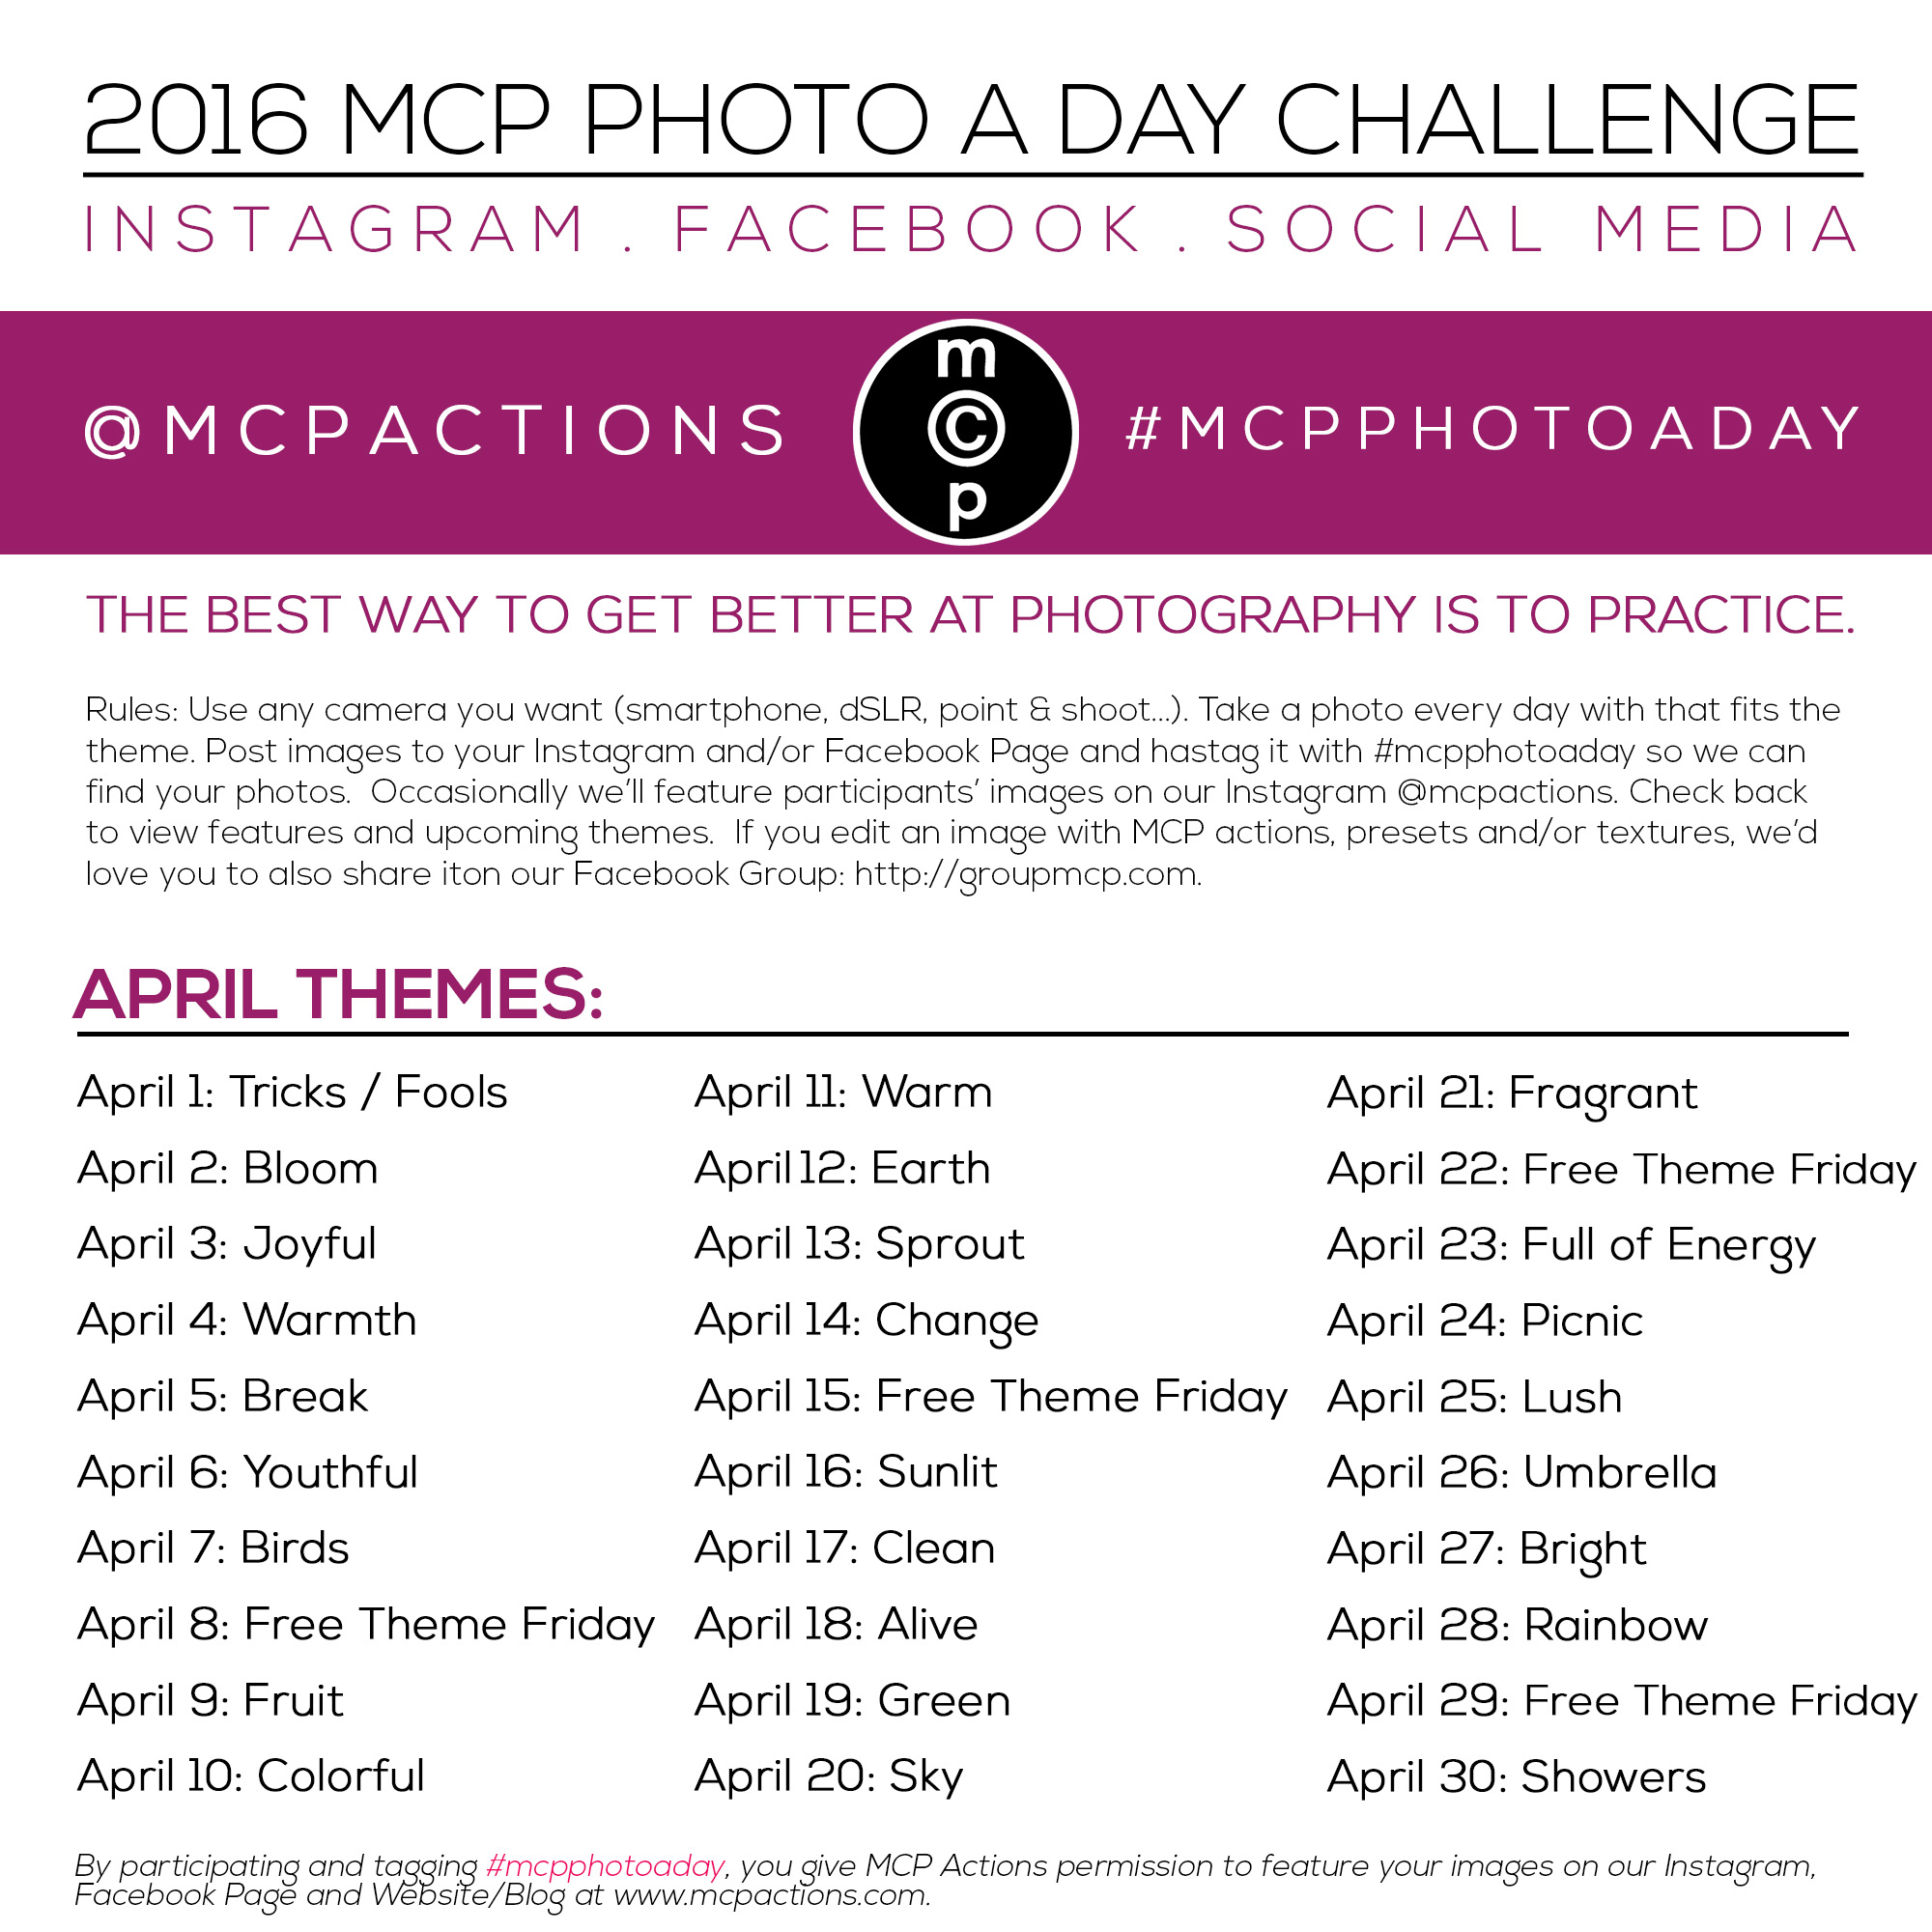 mcpphotoaday-april-2016 MCP Photo A Day Challenge: April 2016 Activities Announcements Assignments